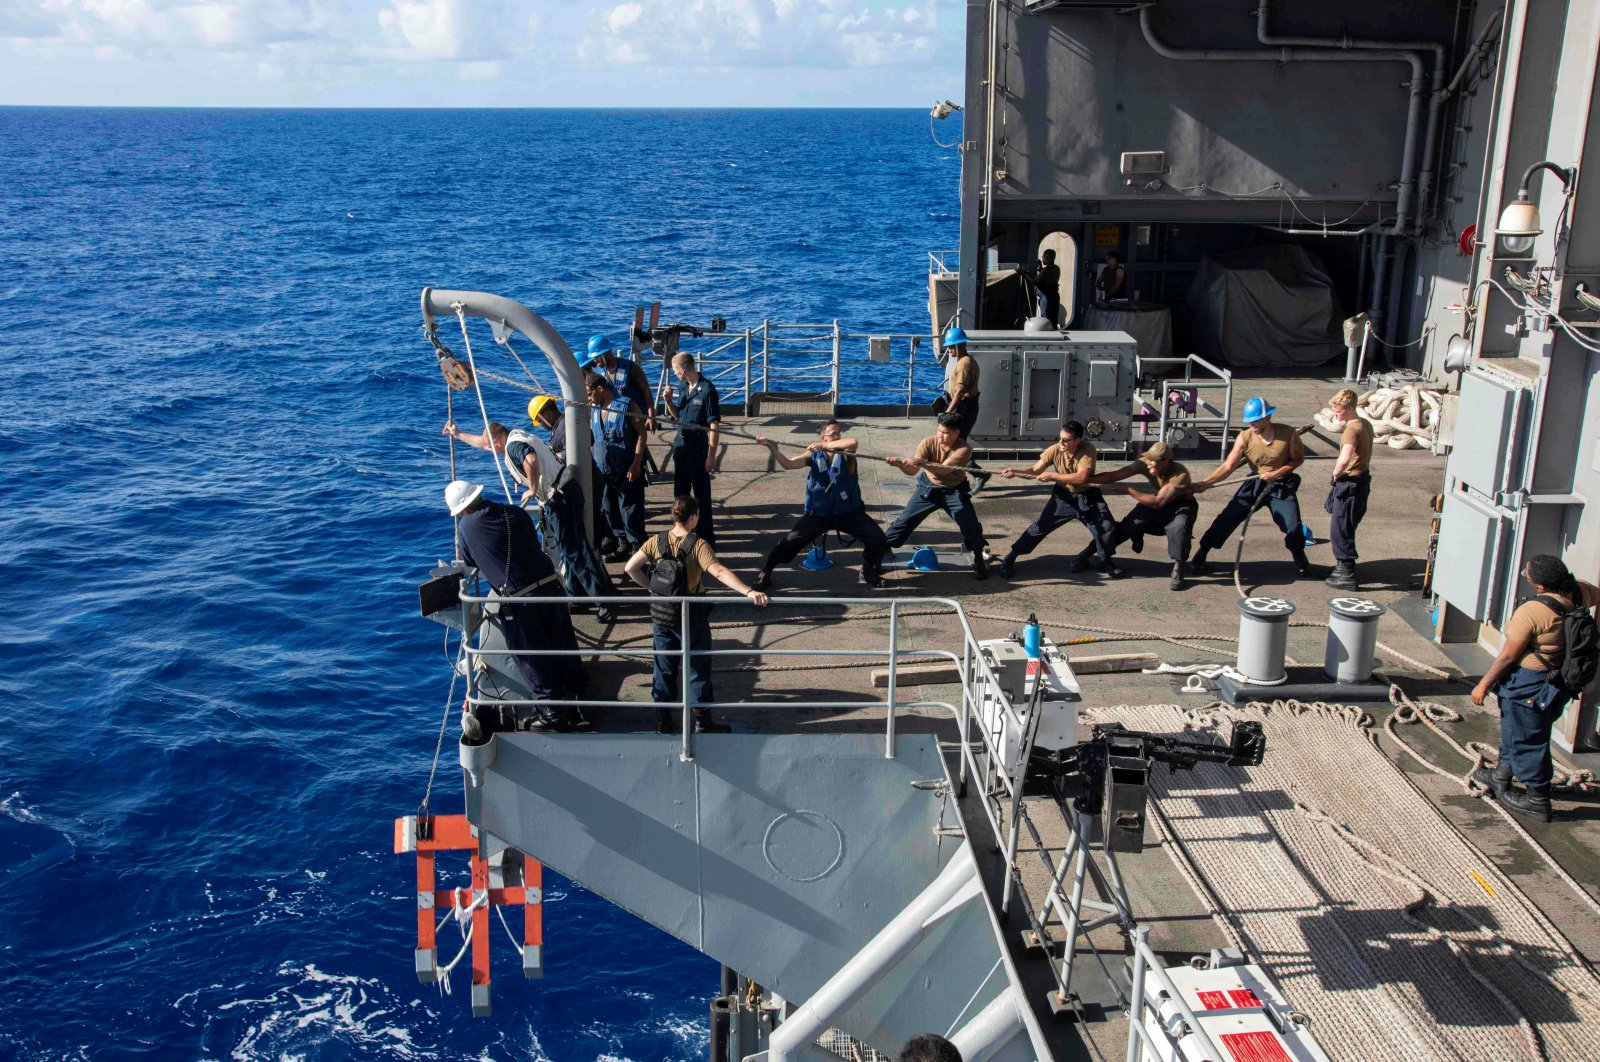 U.S. Navy sailors raise a larne target from the fantail of the aircraft carrier USS Theodore Roosevelt  in the Philippine Sea March 21, 2020. (Reuters Photo)